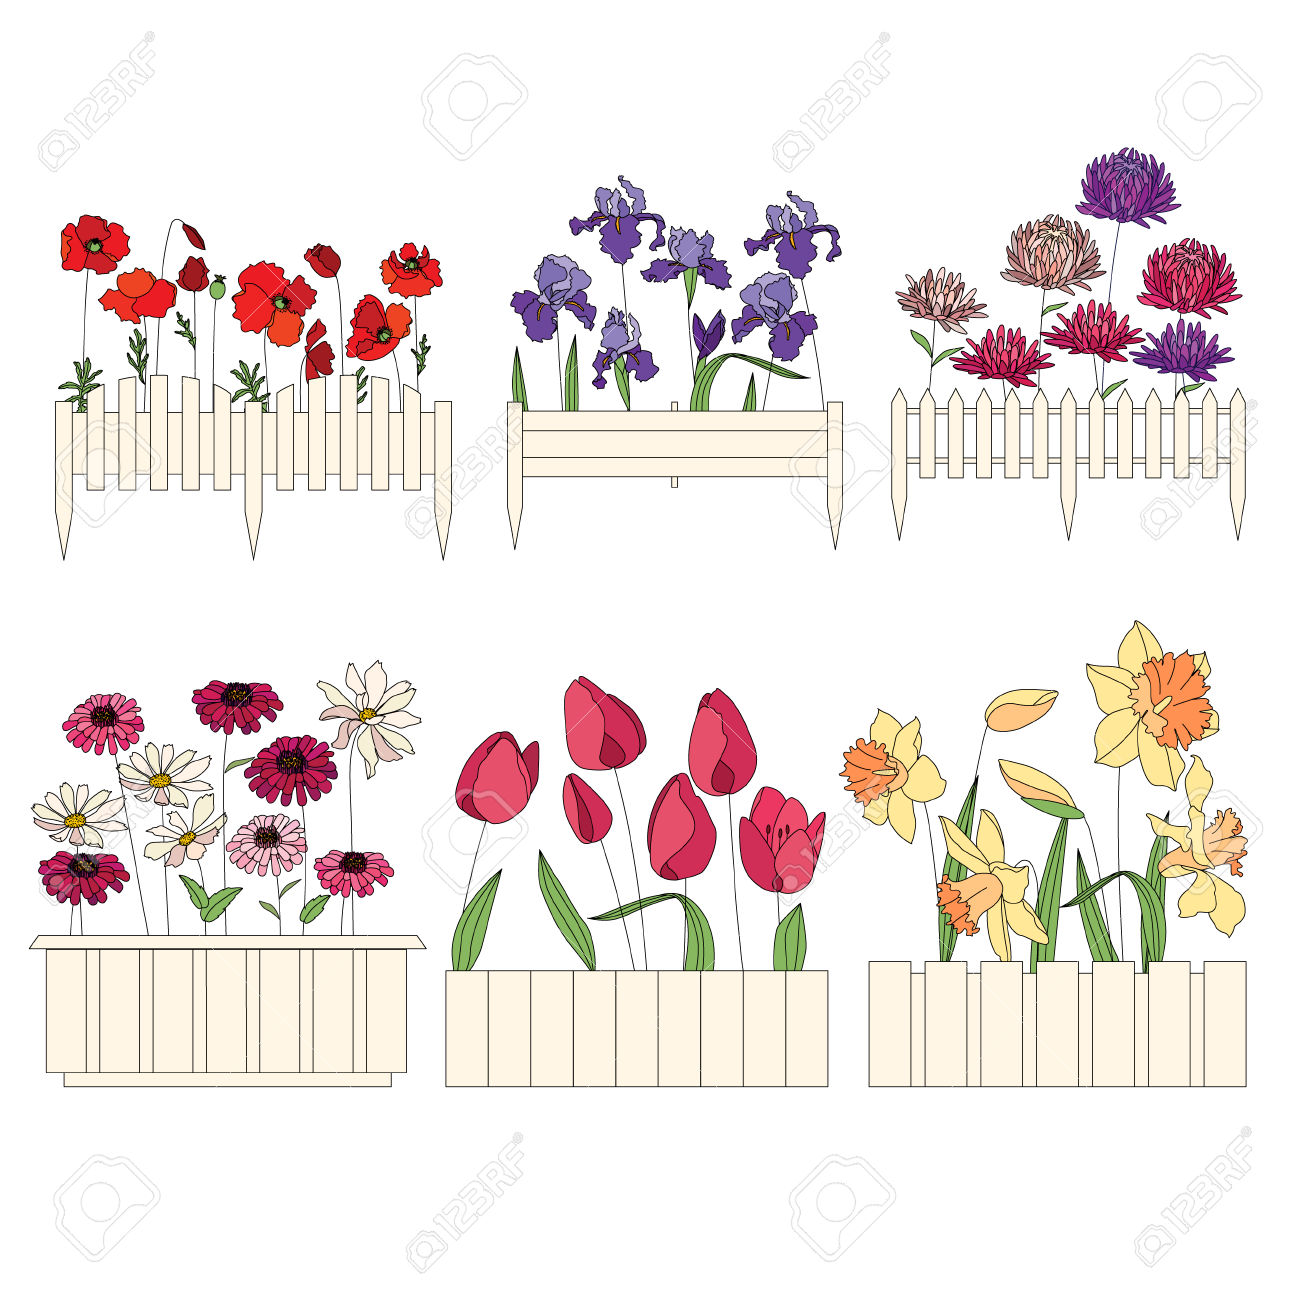 Flower Pots With Cultivated Flowers. Decorative Fence. Plants.